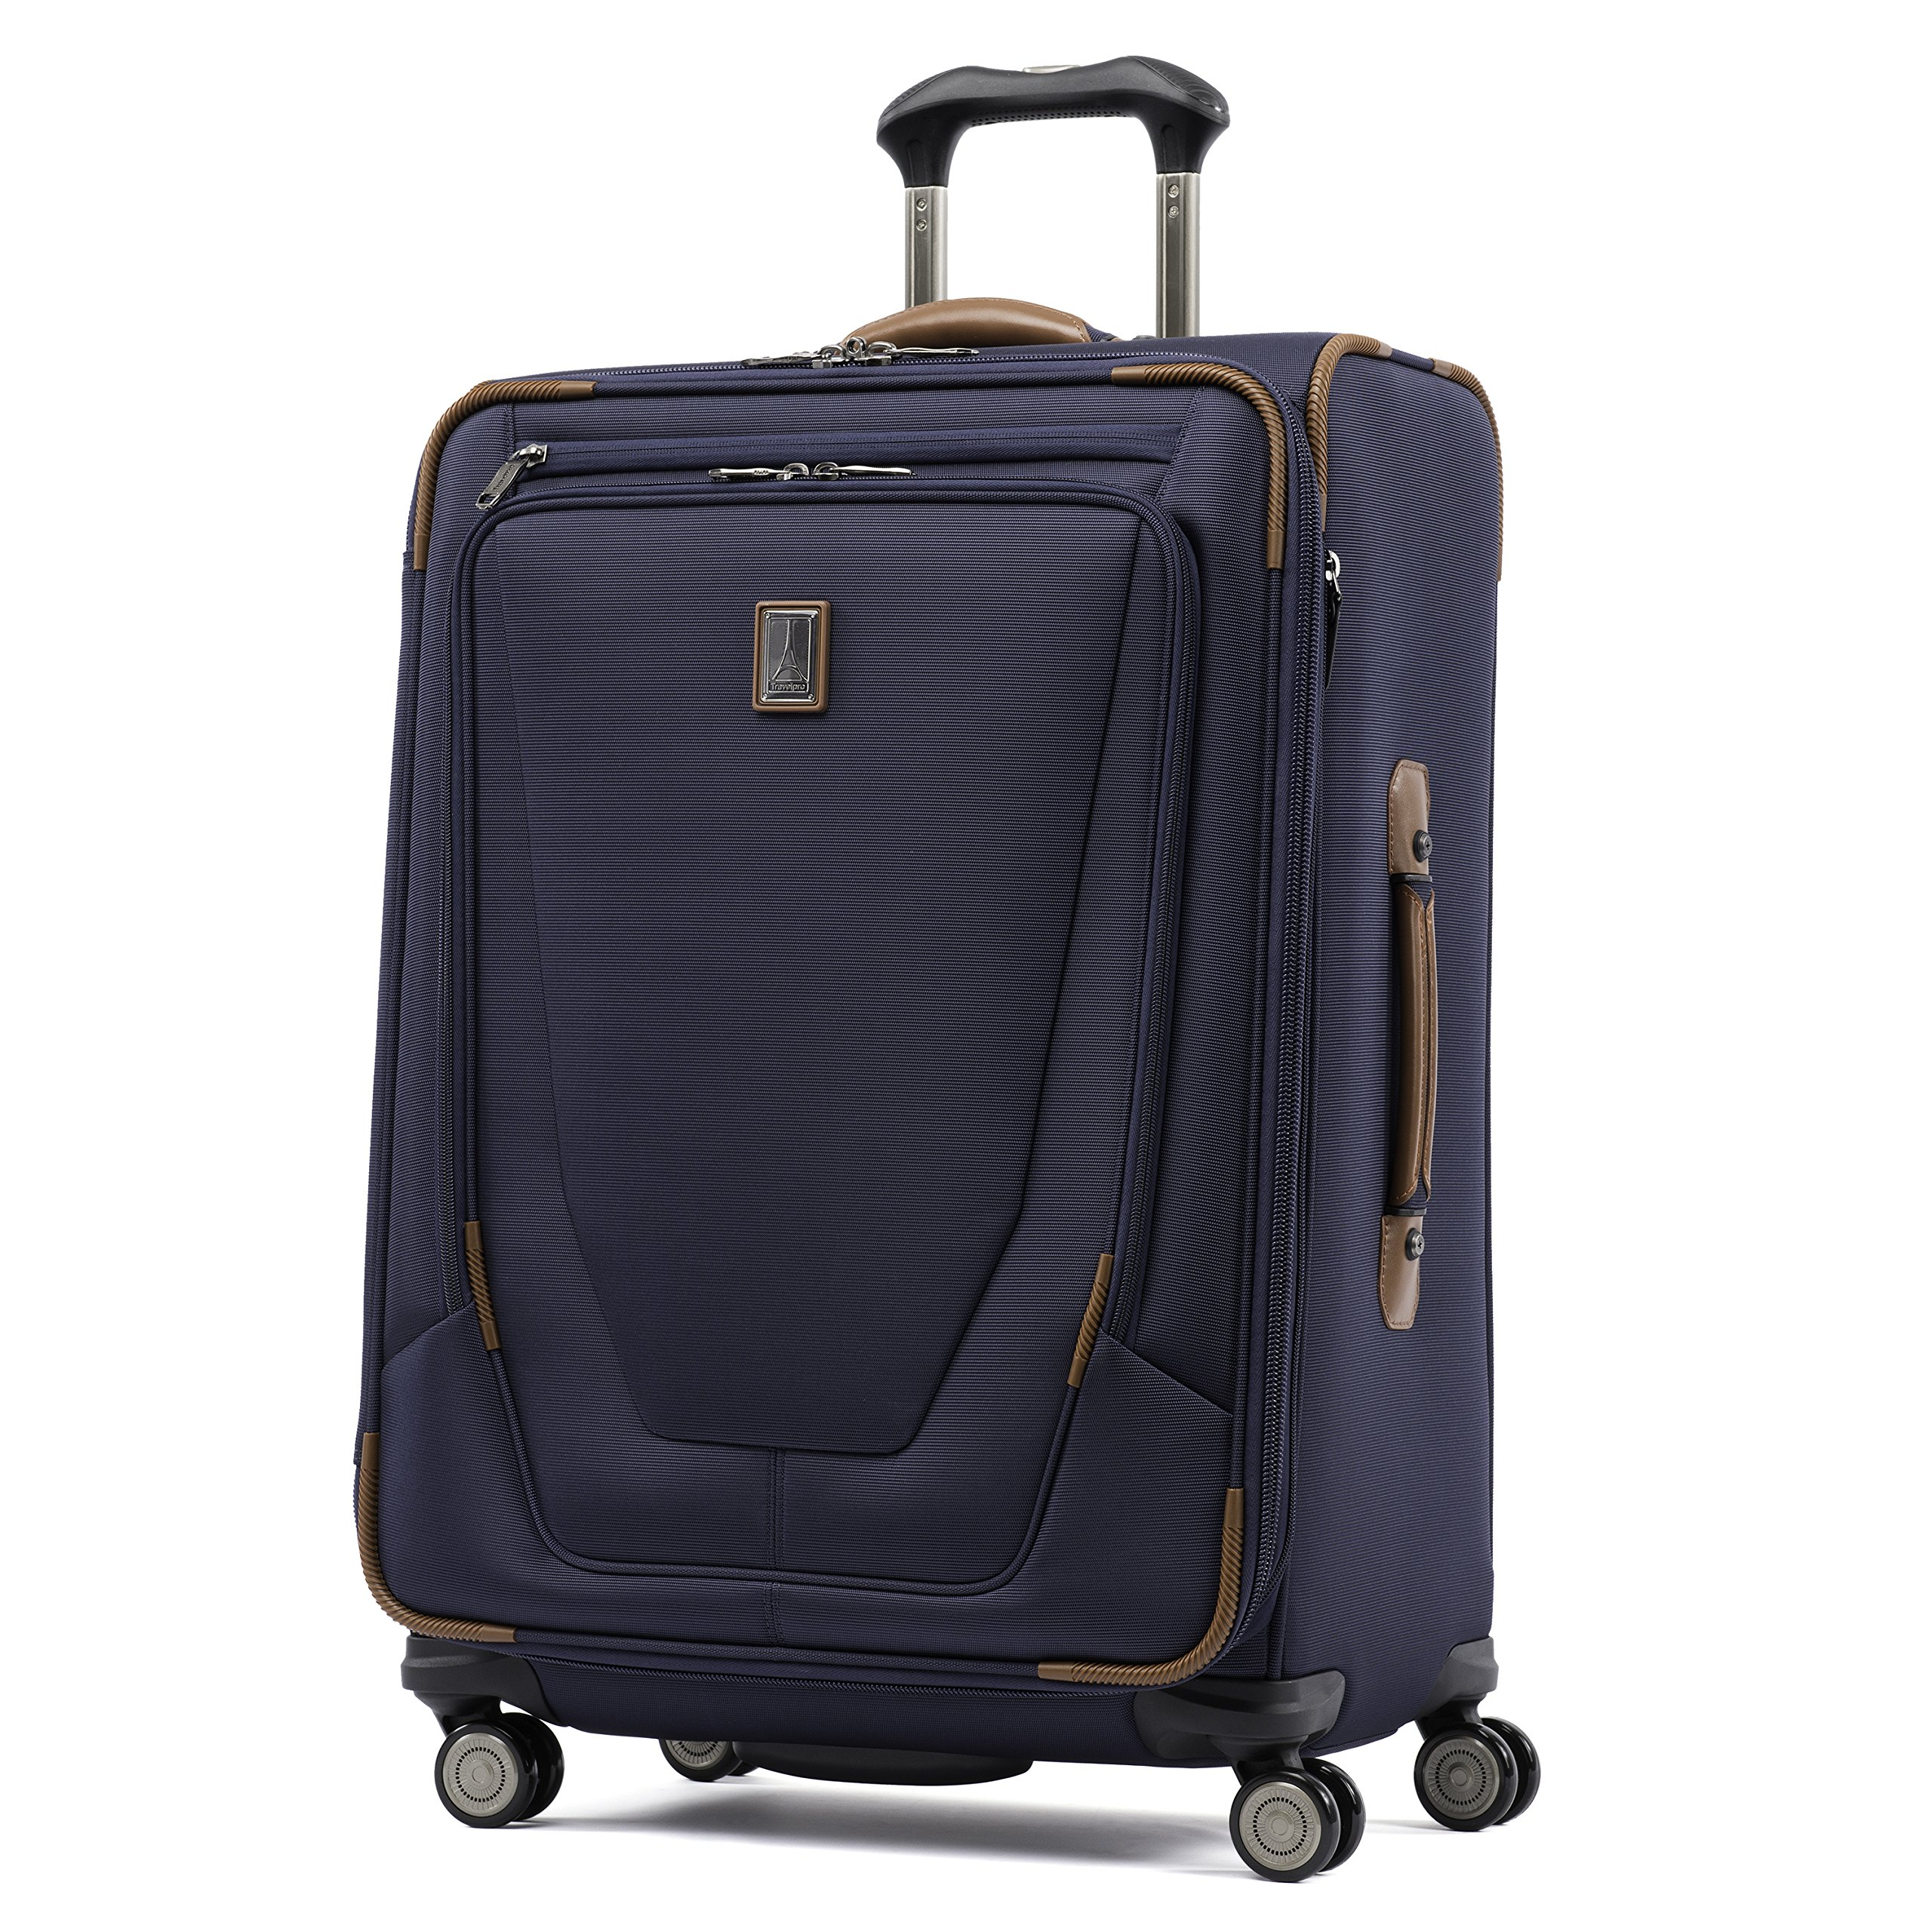 Travelpro Luggage Crew 11 25'' Expandable Spinner Suitcase w/Suiter, Patriot Blue